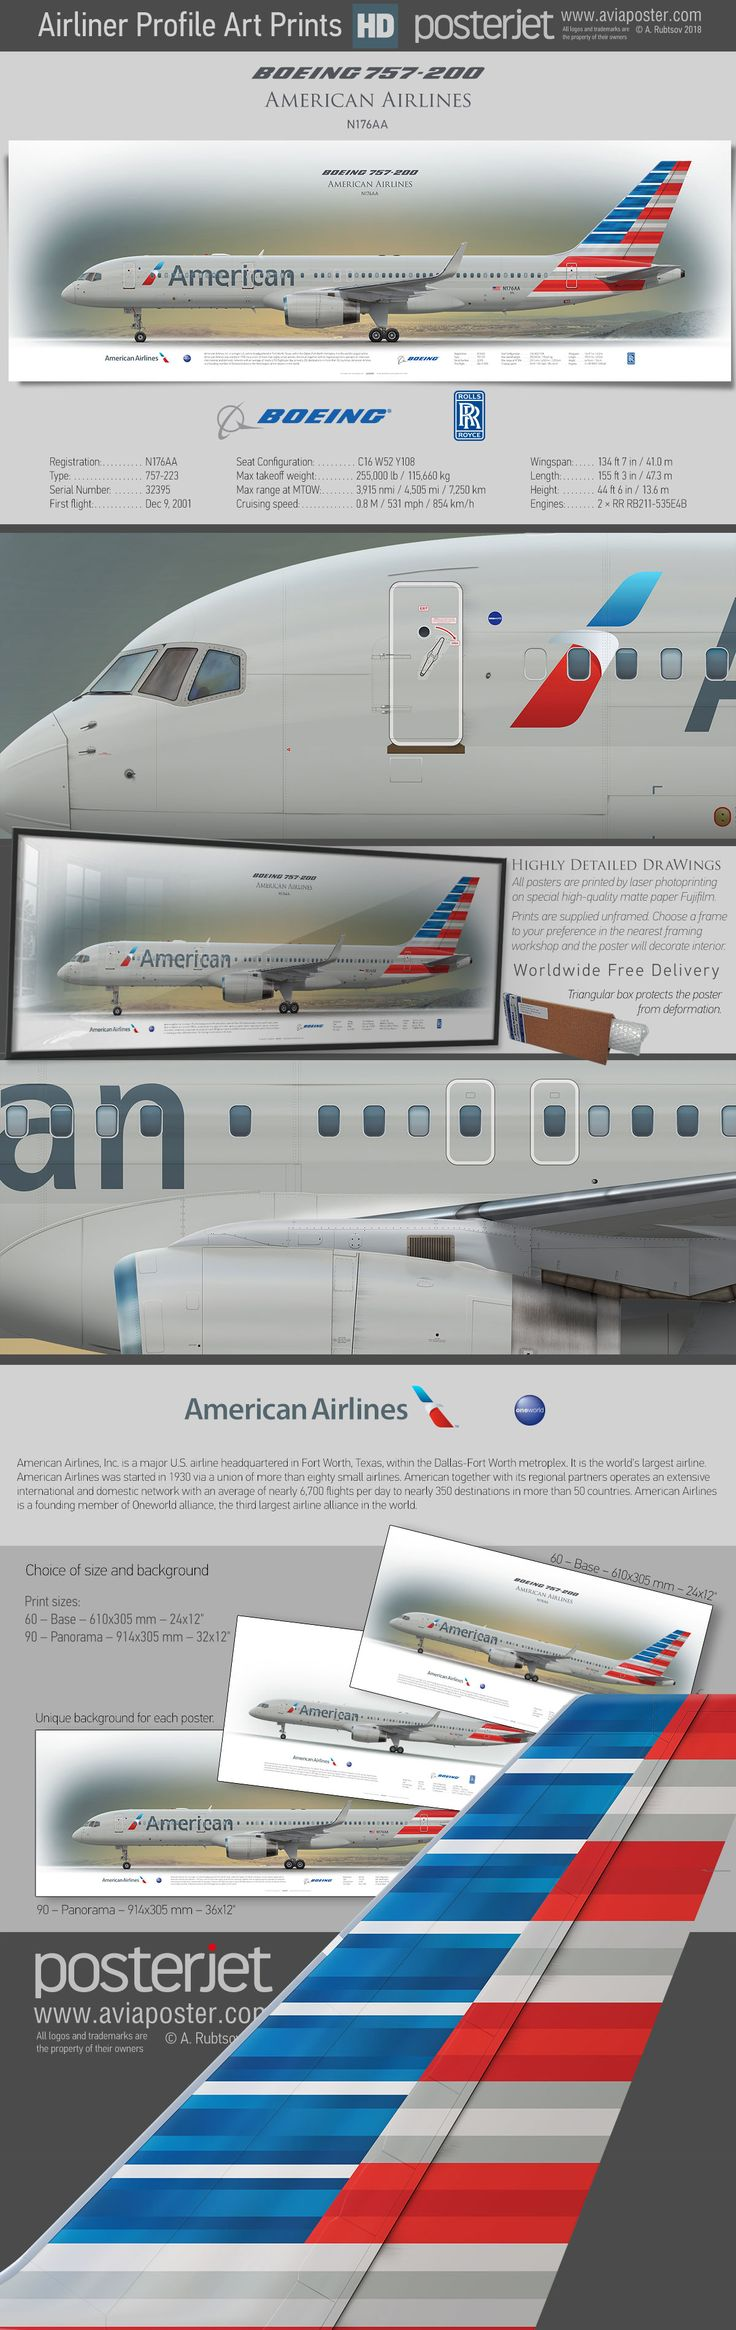 Best 25 aa american airlines ideas on pinterest airlines boeing 757 200 american airlines n176aa aviaposter aviation sciox Image collections